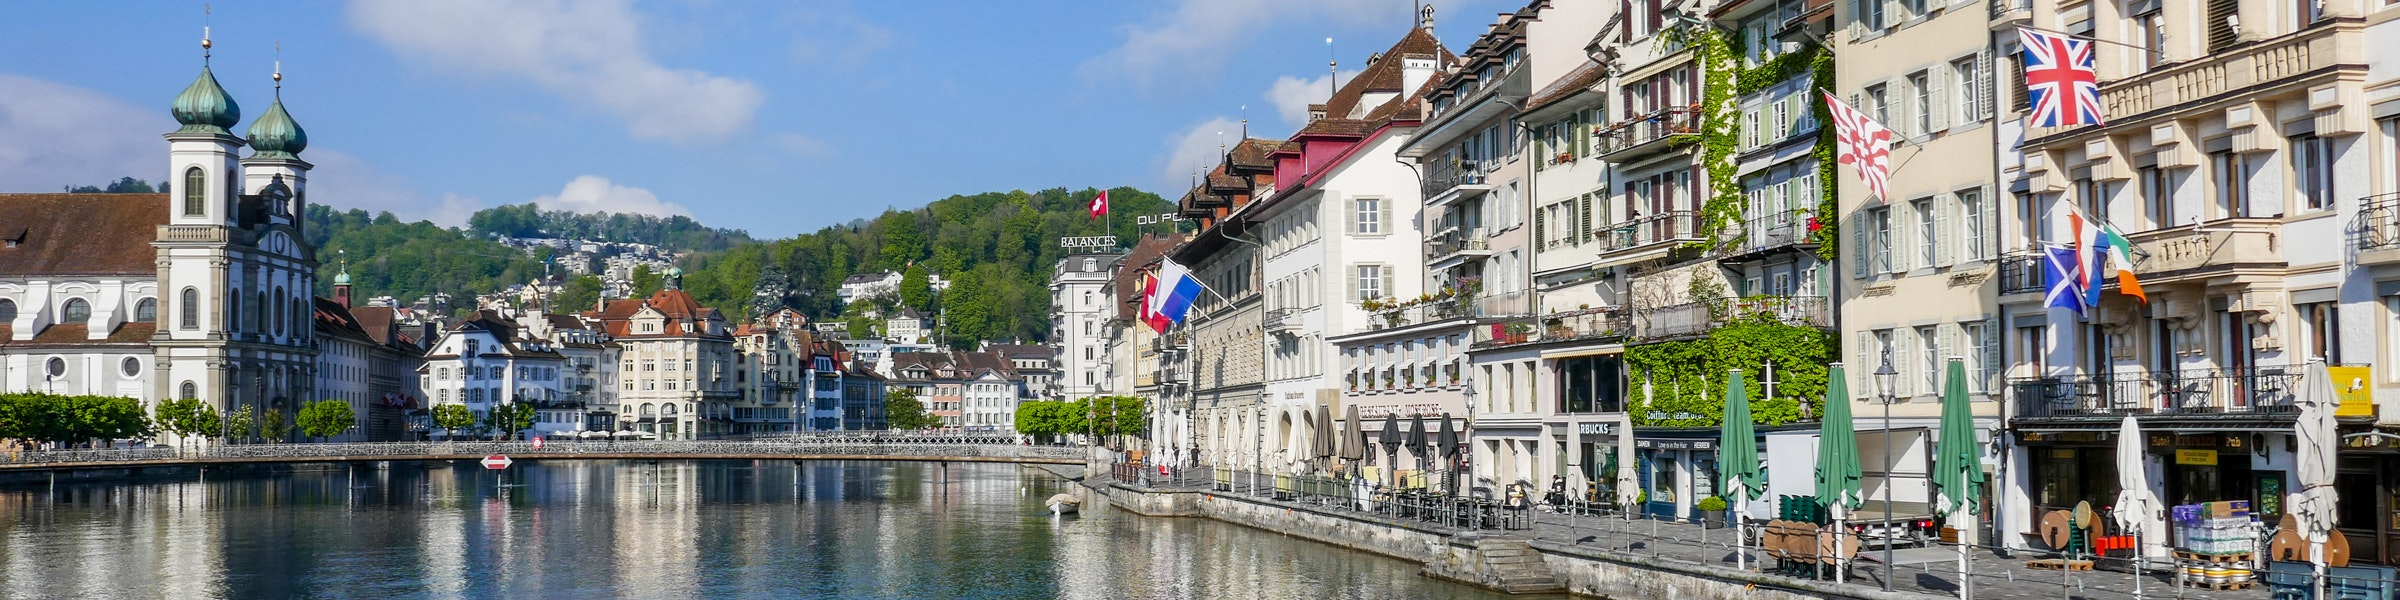 Hotels in Luzern on river Reuss